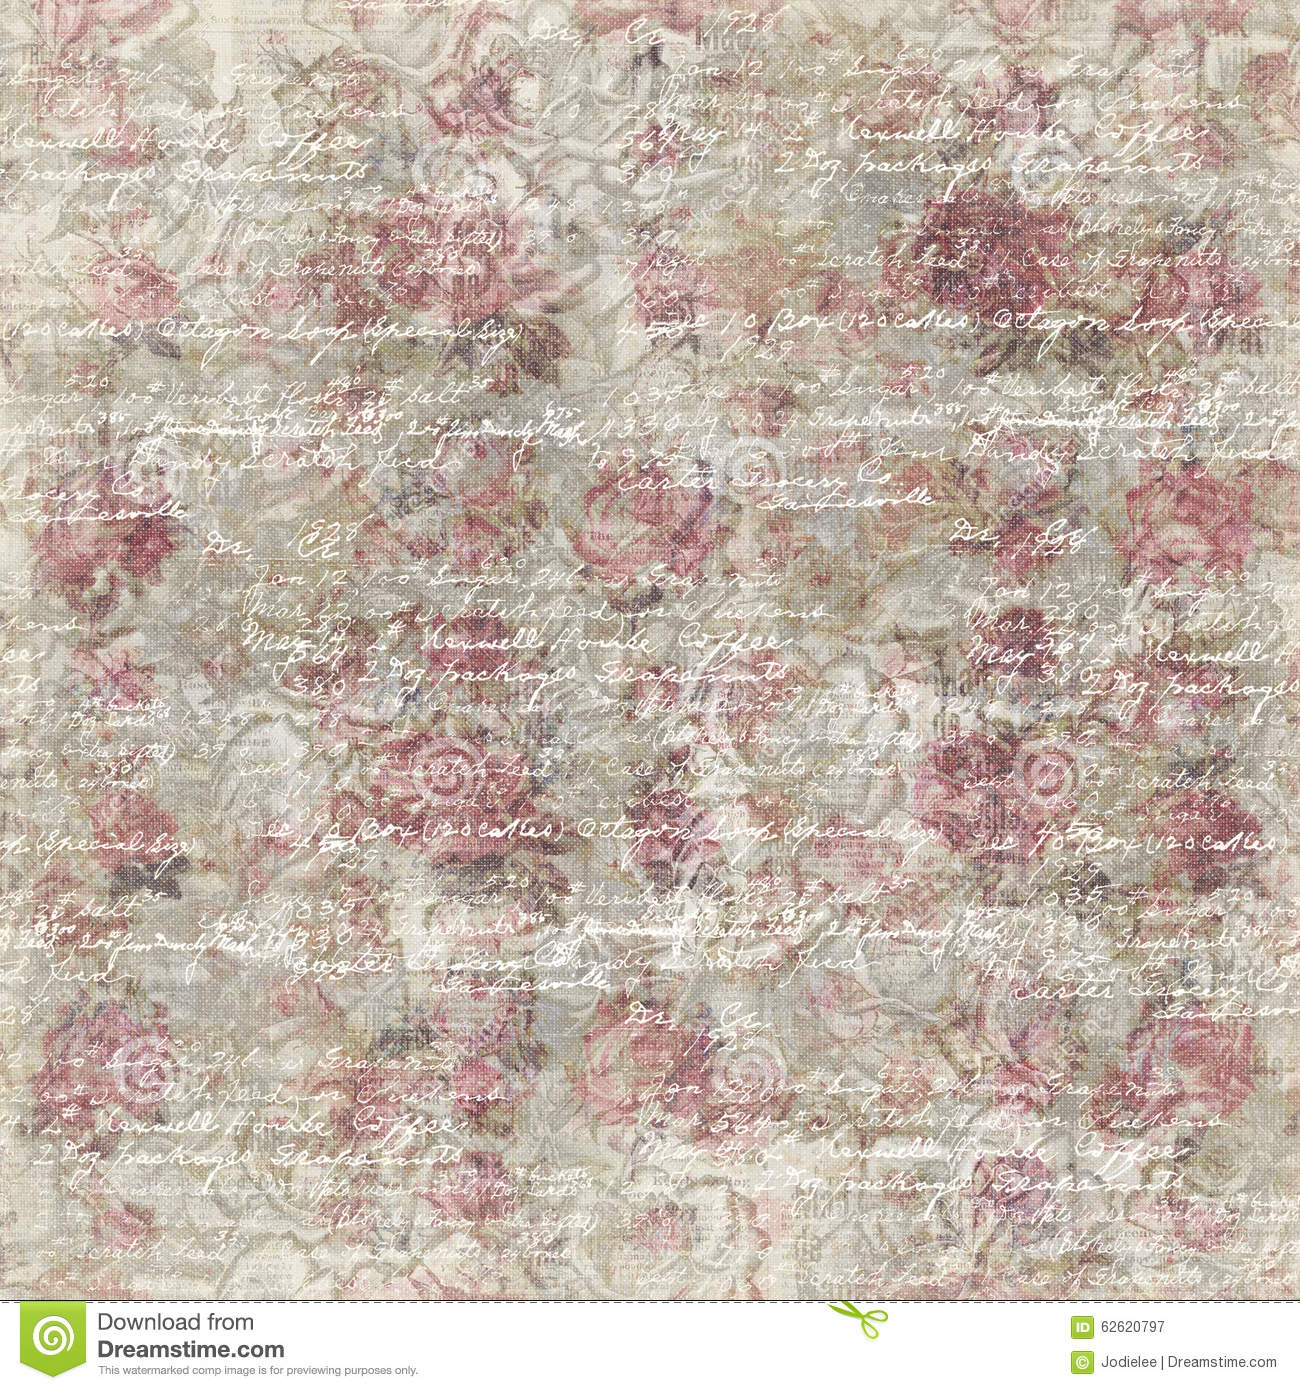 Grungy Vintage Rose Flower Botanical Wallpaper Background Repeat